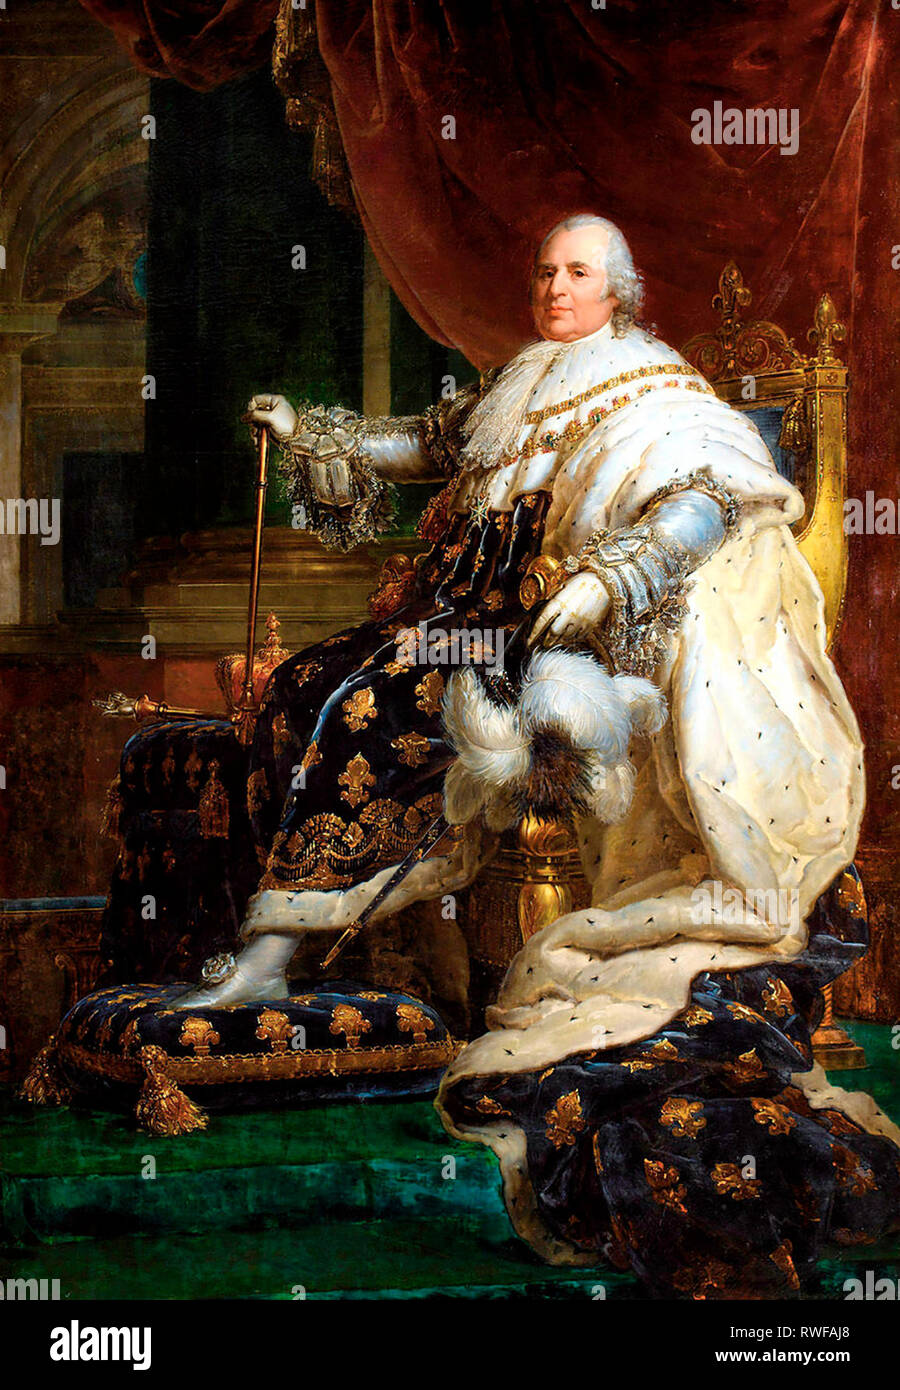 Louis XVIII of France in Coronation Robes - Francois Gerard - Stock Image